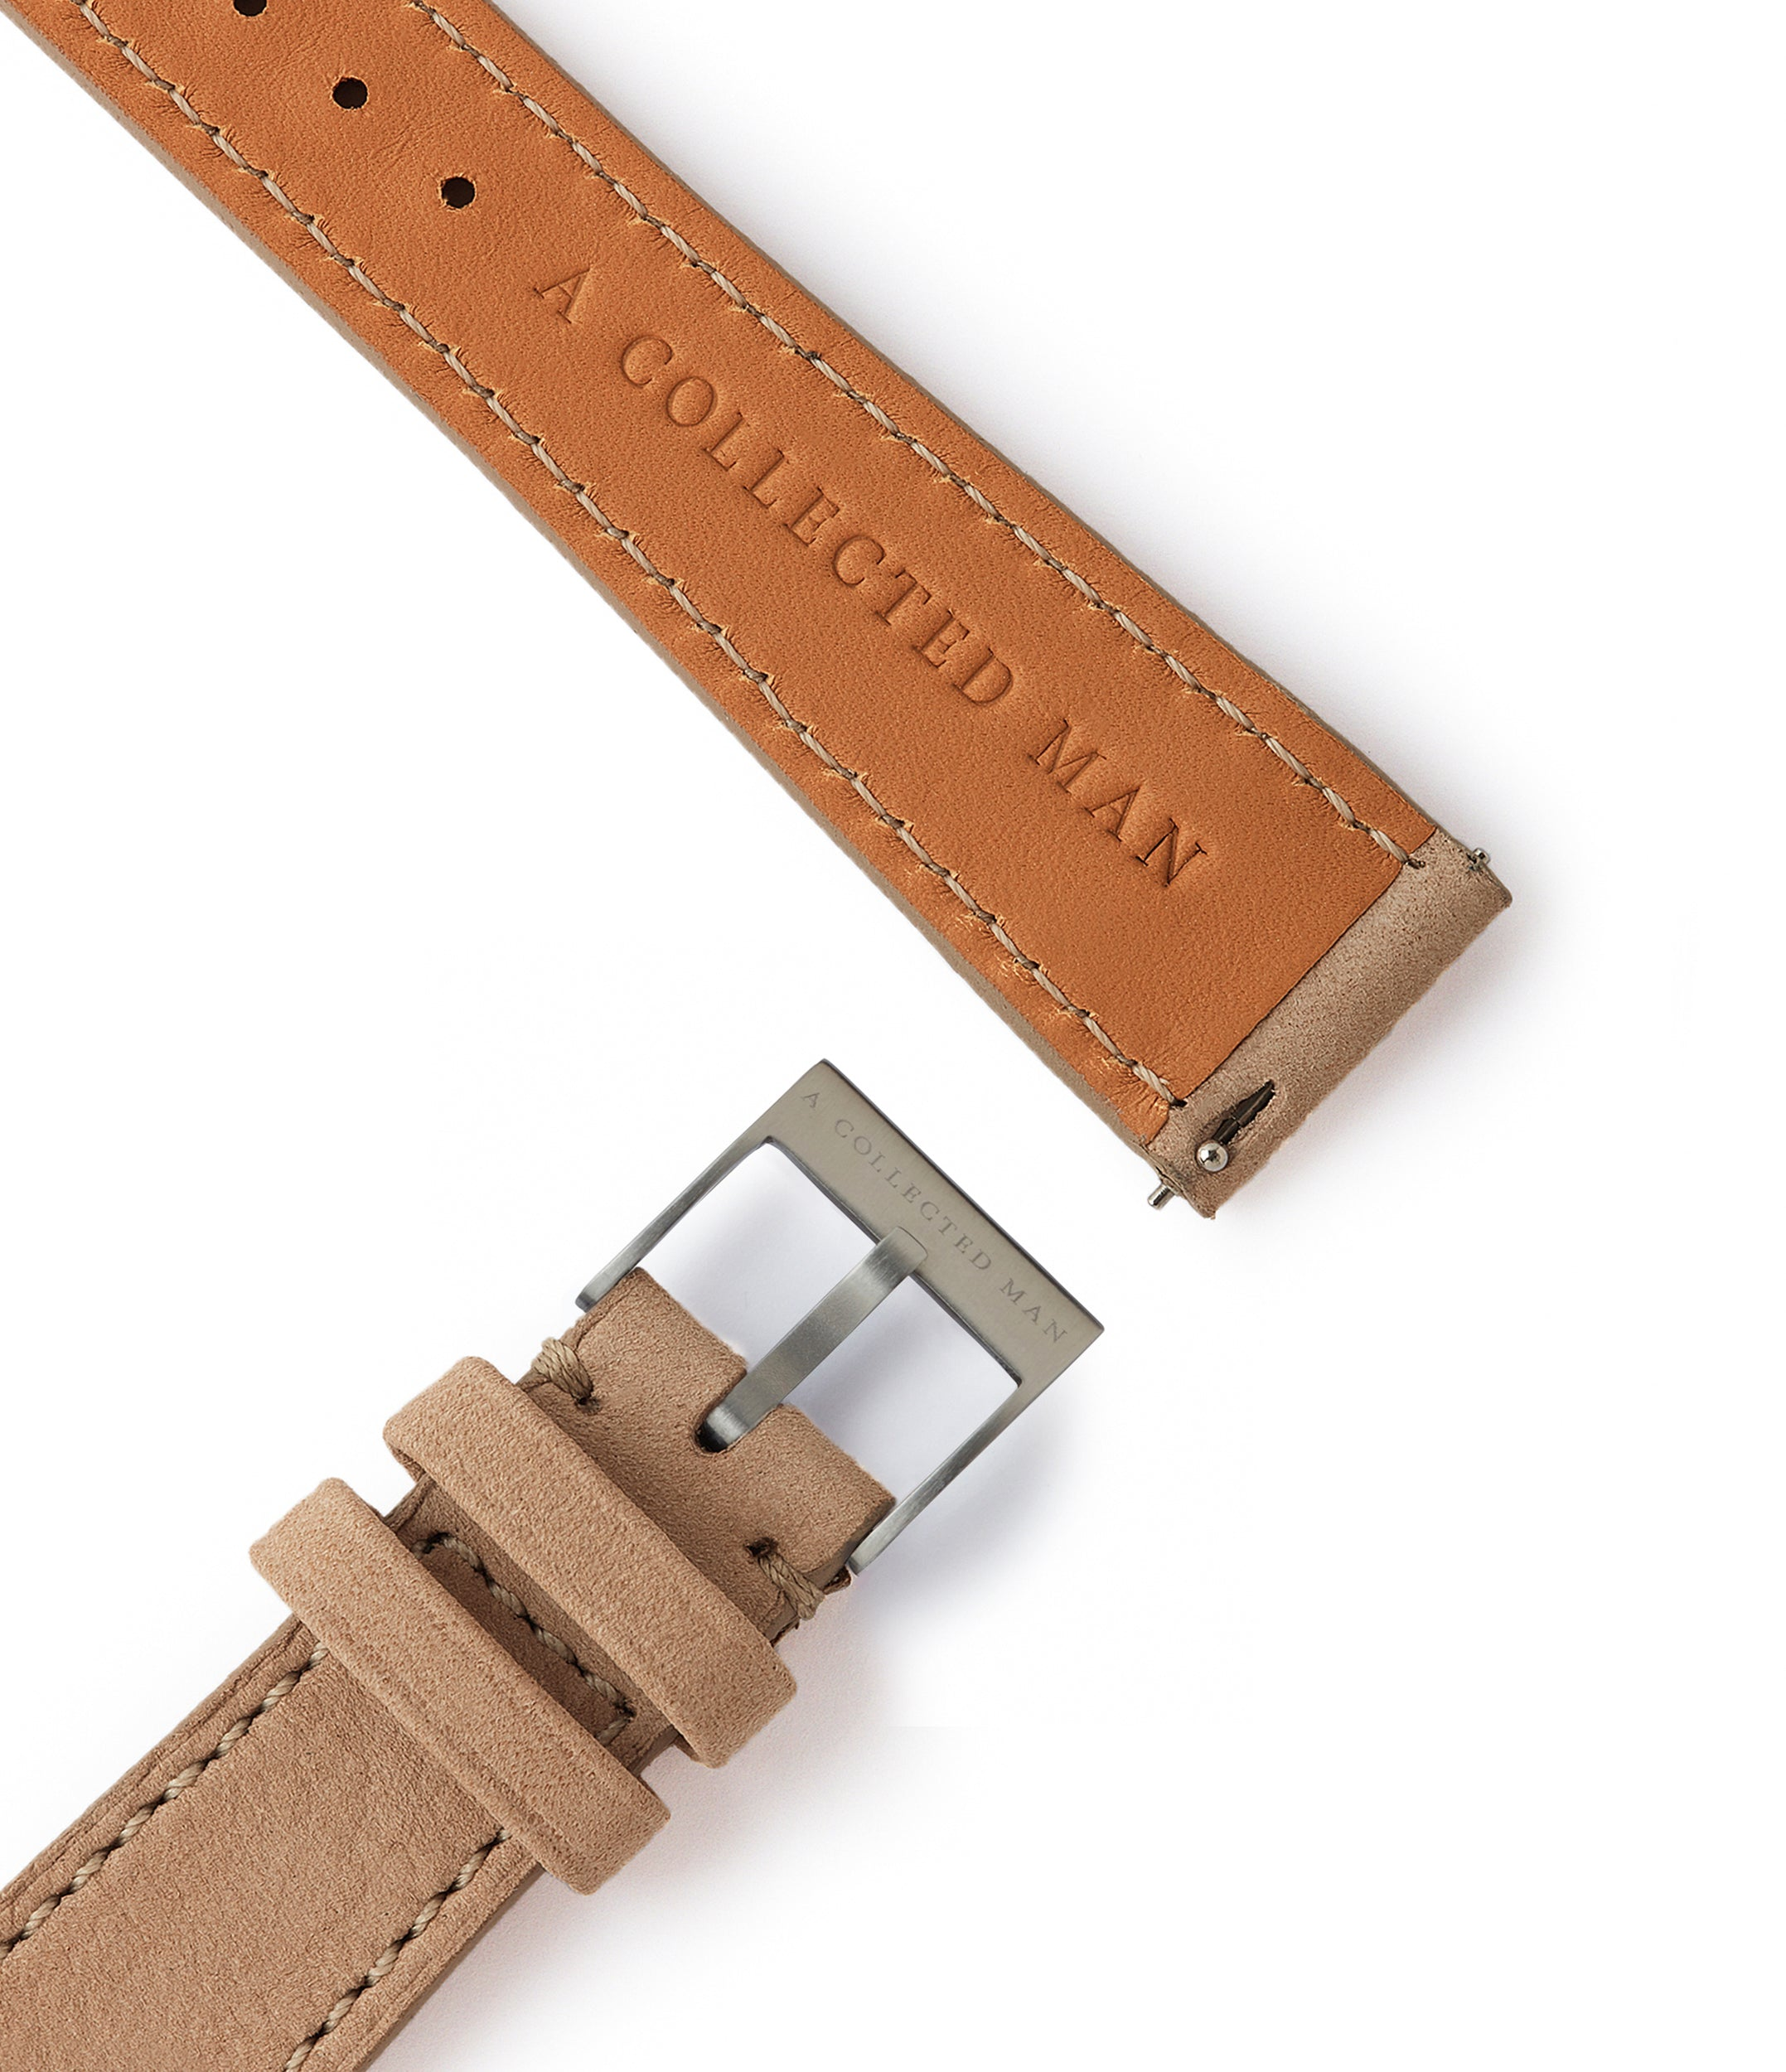 light nude neutral leather nubuck watch strap quick-release springbars Istanbul Molequin for sale order online at A Collected Man London